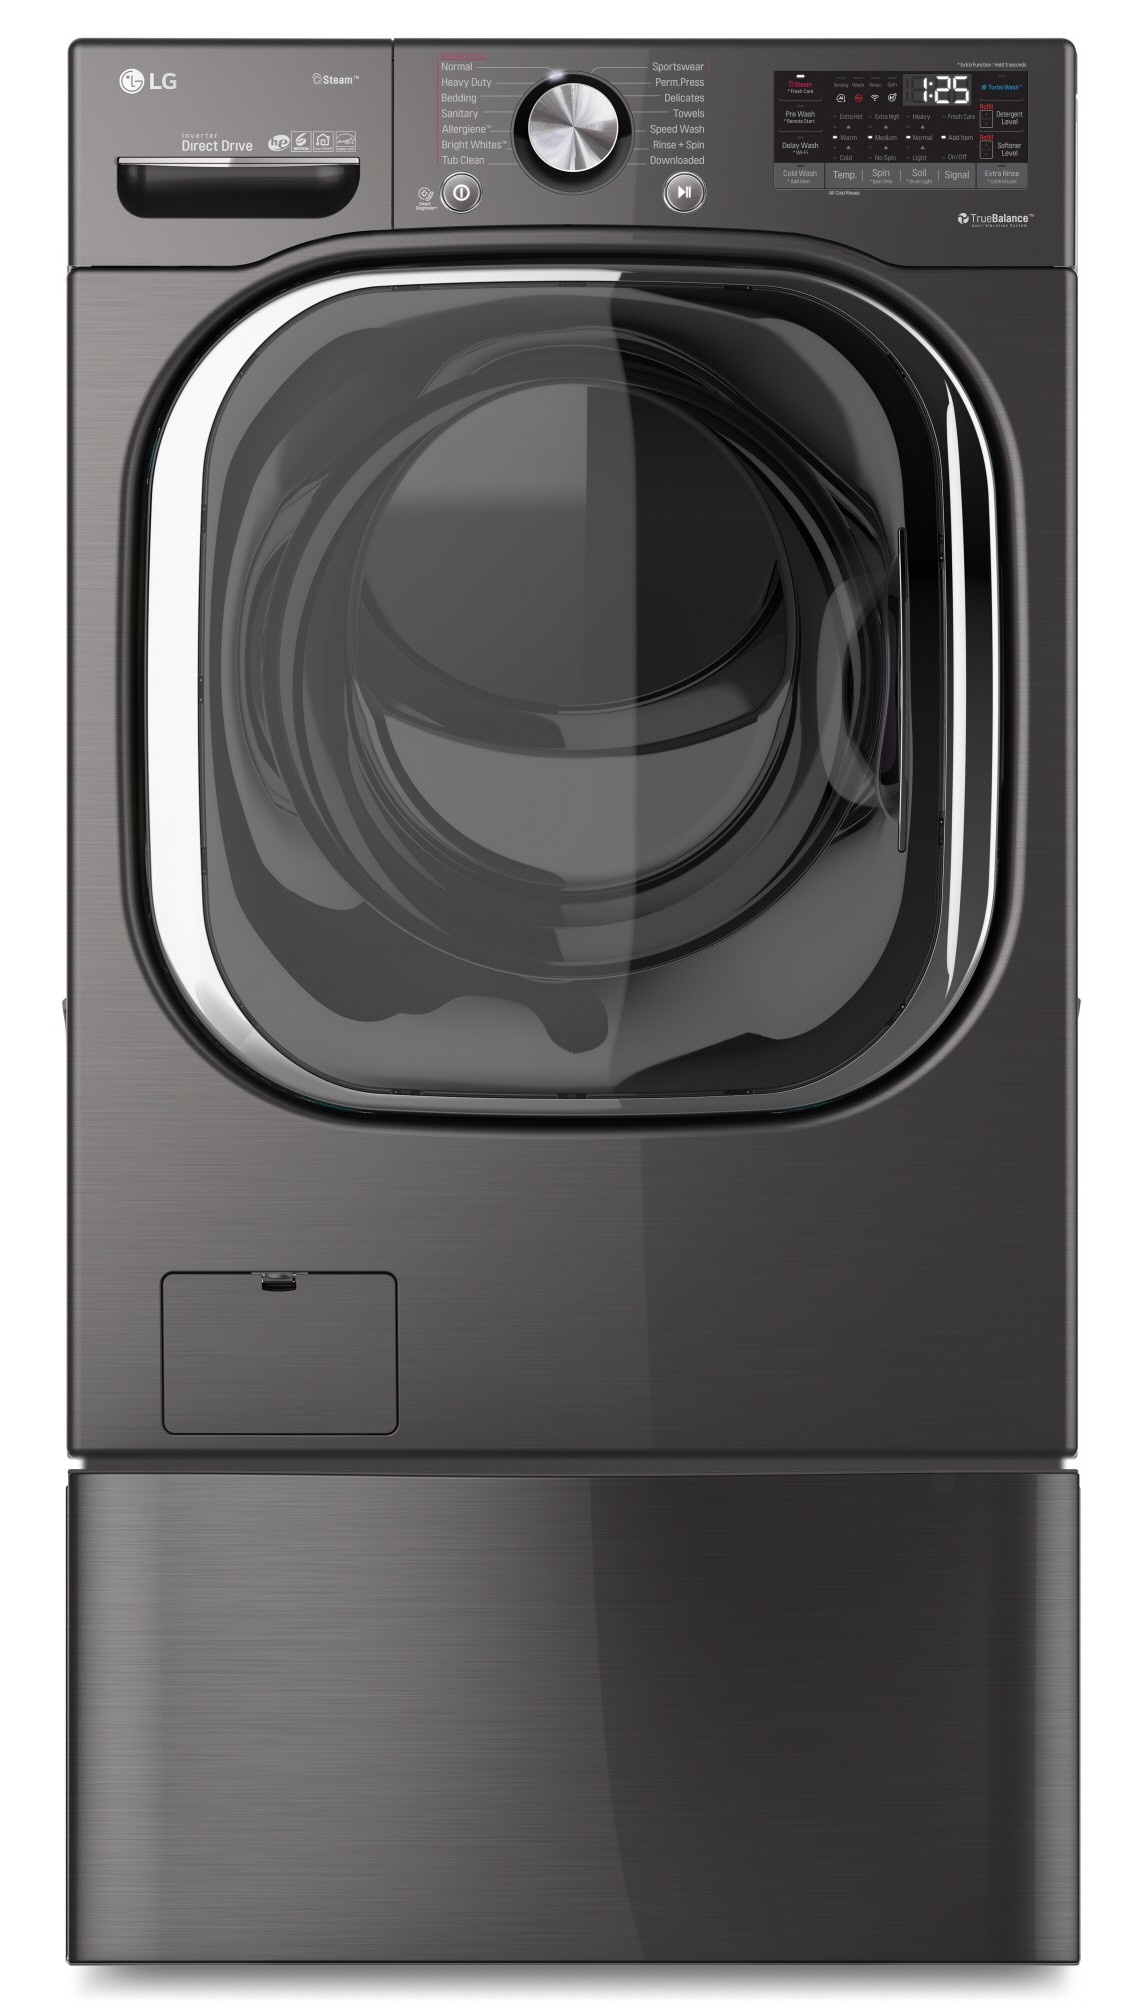 Front view of AI DD™-equipped LG ThinQ™ front-load washing machine next to LG dryer in a laundry room. The Sidekick washer below the front loader is opened, and the pedestal unit below the dryer is closed.